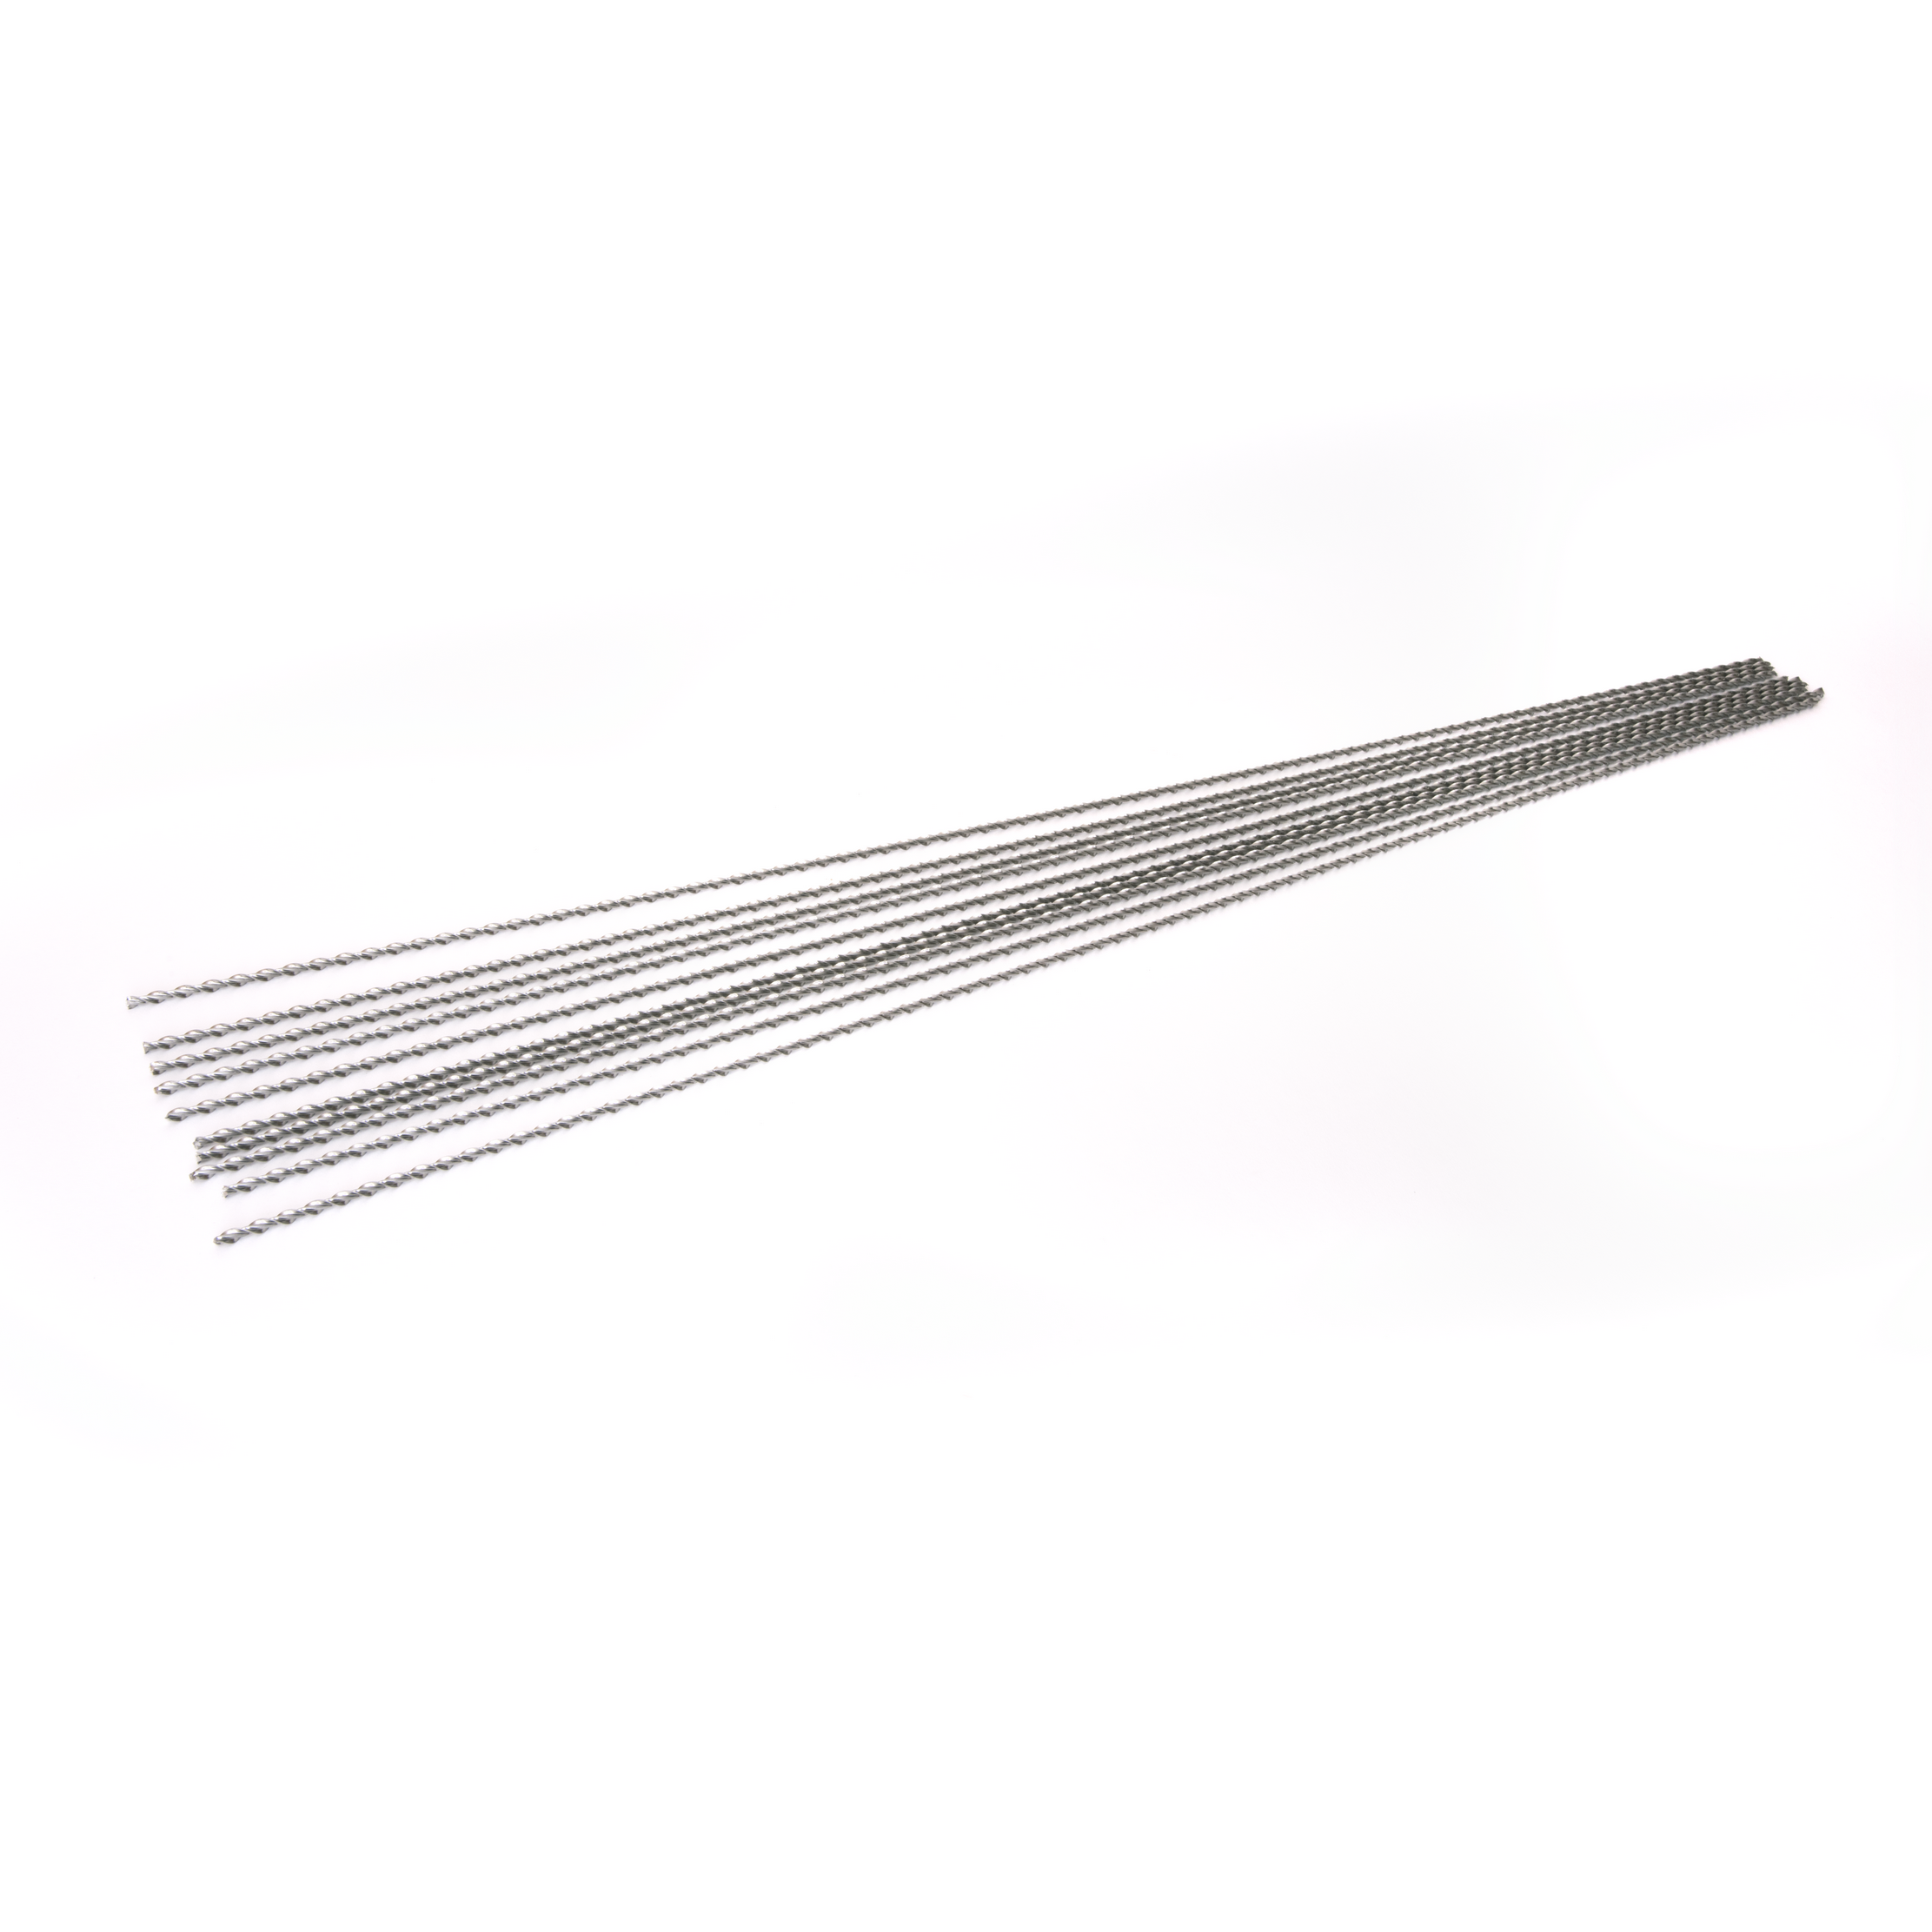 helical bar 6mm x 1m, pack of 10